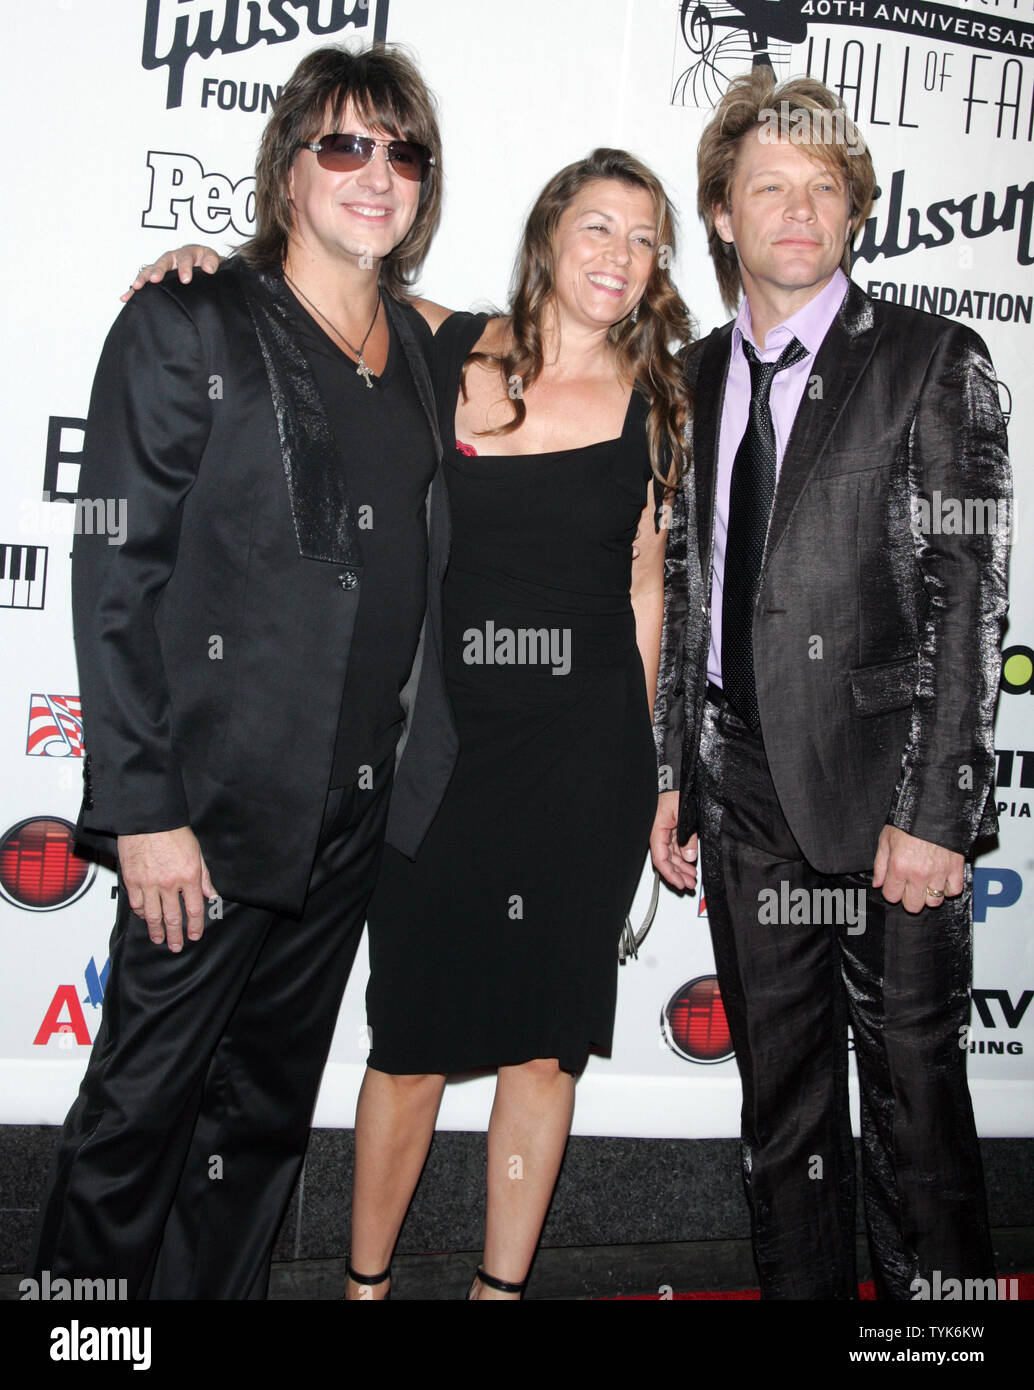 Picture of jon bon jovi and wife, free porn blowjob orgy party